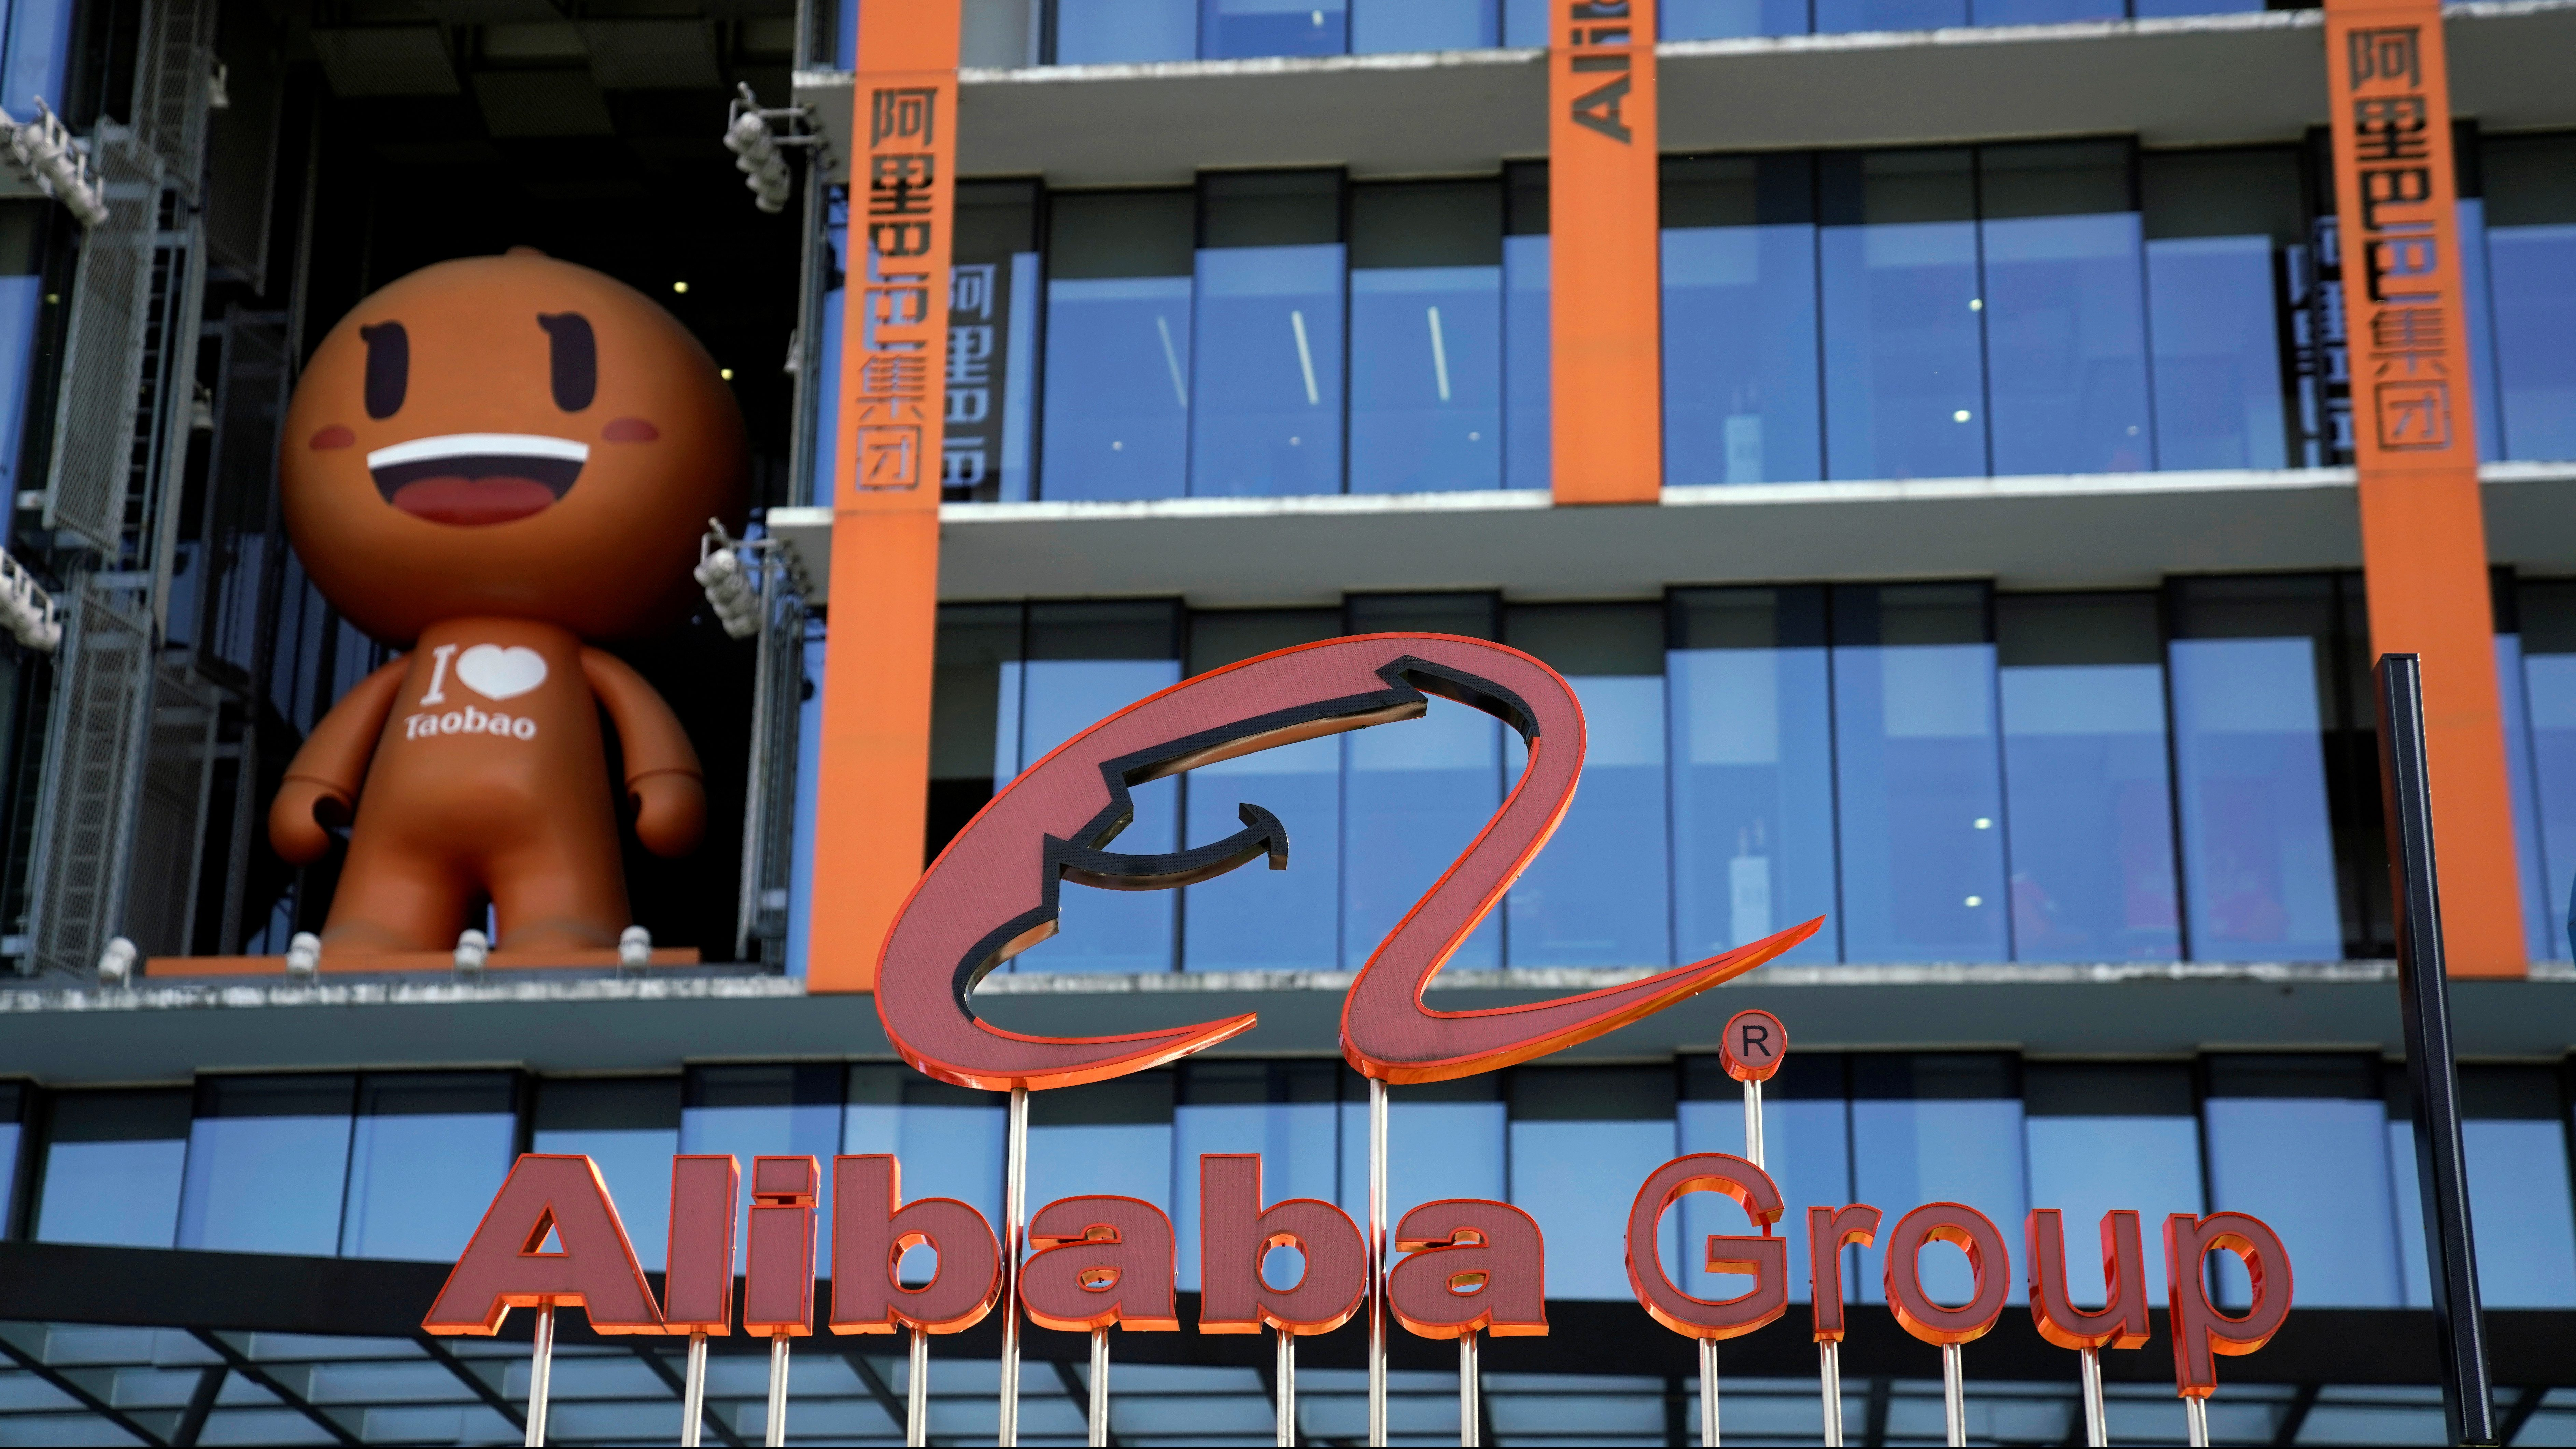 An Alibaba Group logo during Singles Day 2019